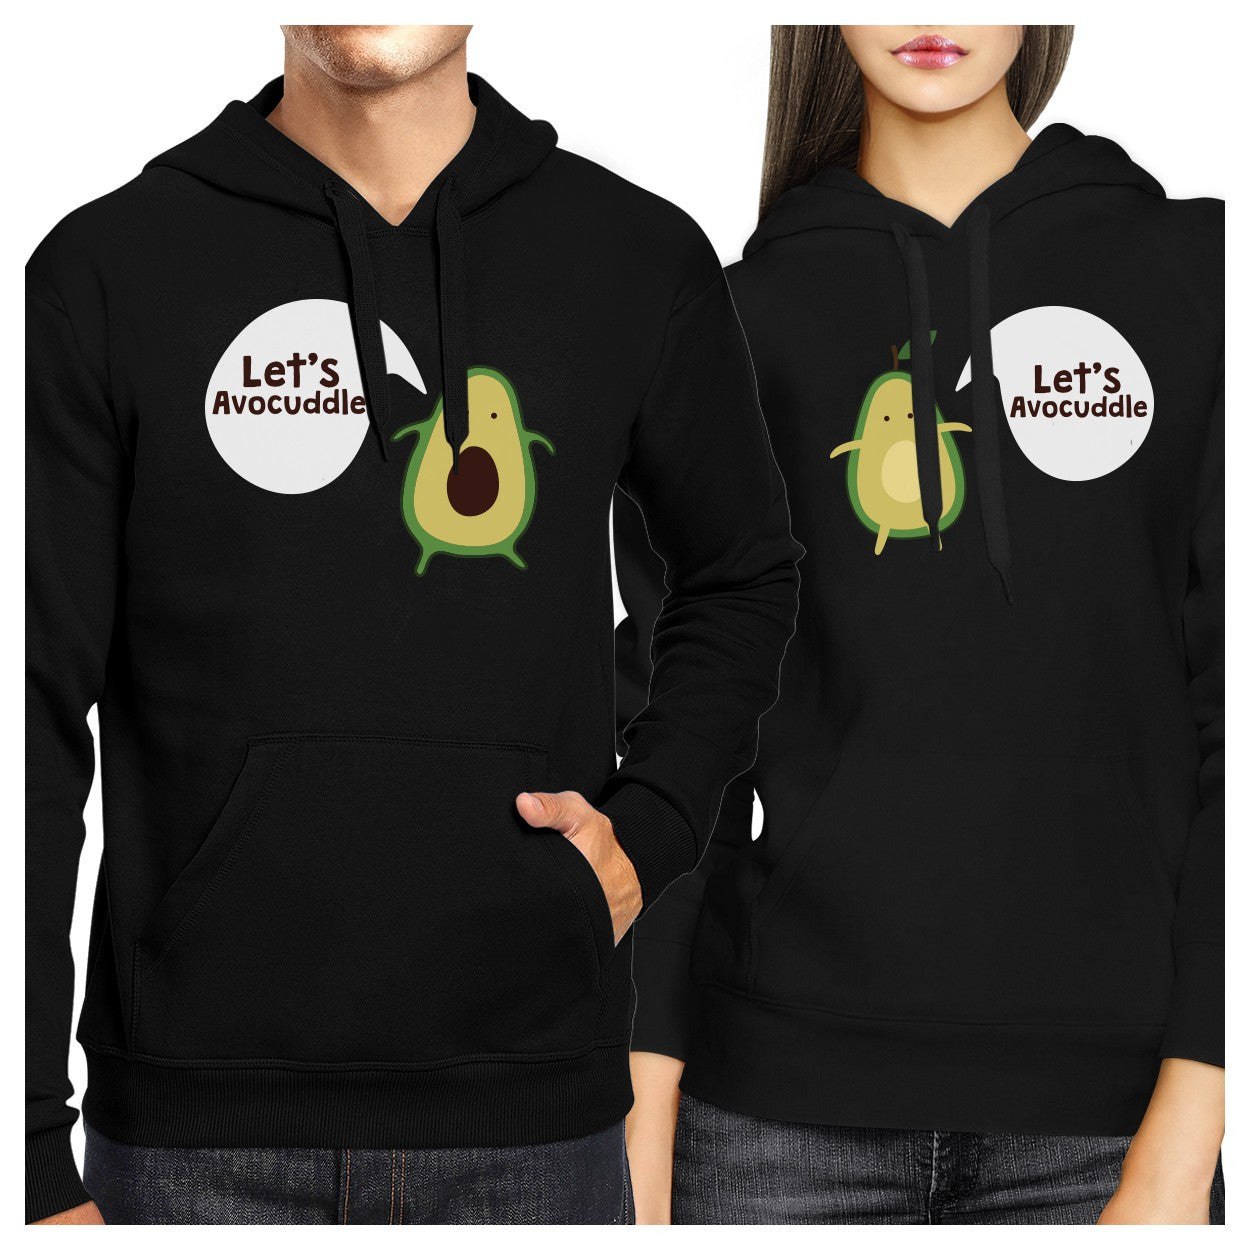 81454dc387 Let's Avocuddle Couple Hoodies His And Hers Matching Holiday Gifts -  365INLOVE